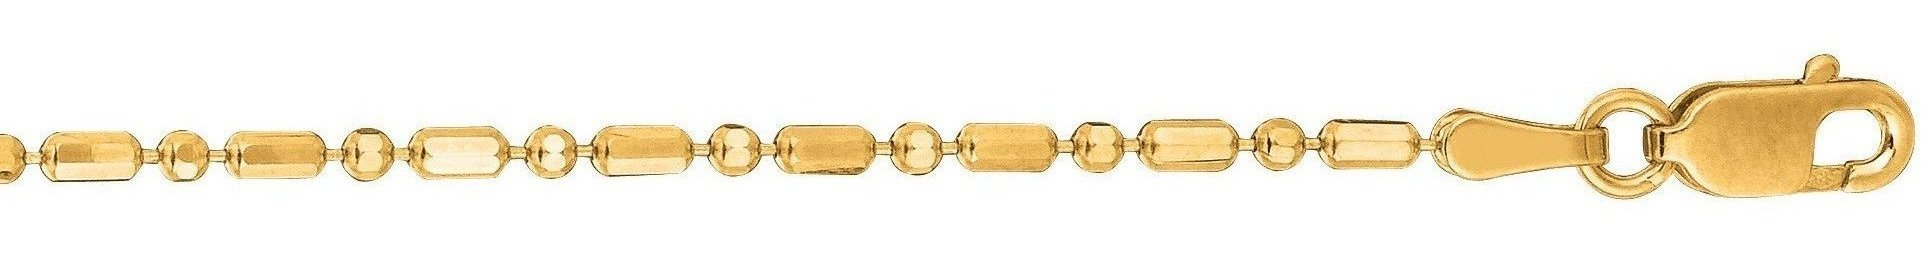 "20"" 14K Yellow Gold 1.5mm (0.06"") Polished Diamond Cut Bead Chain w/ Lobster Clasp"